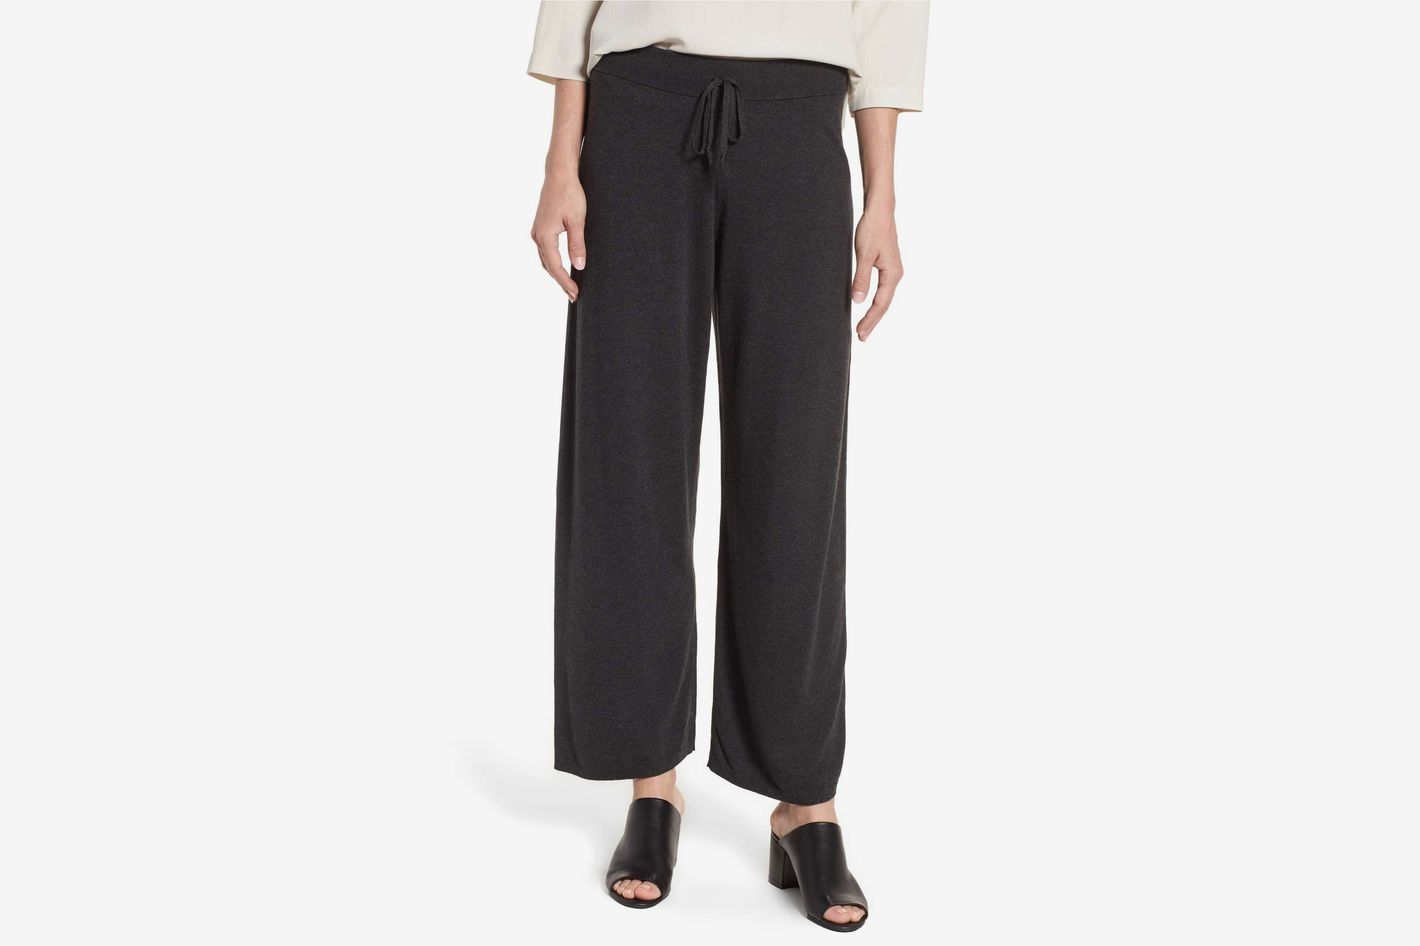 Eileen Fisher Tencel Blend Knit Wide Leg Pants